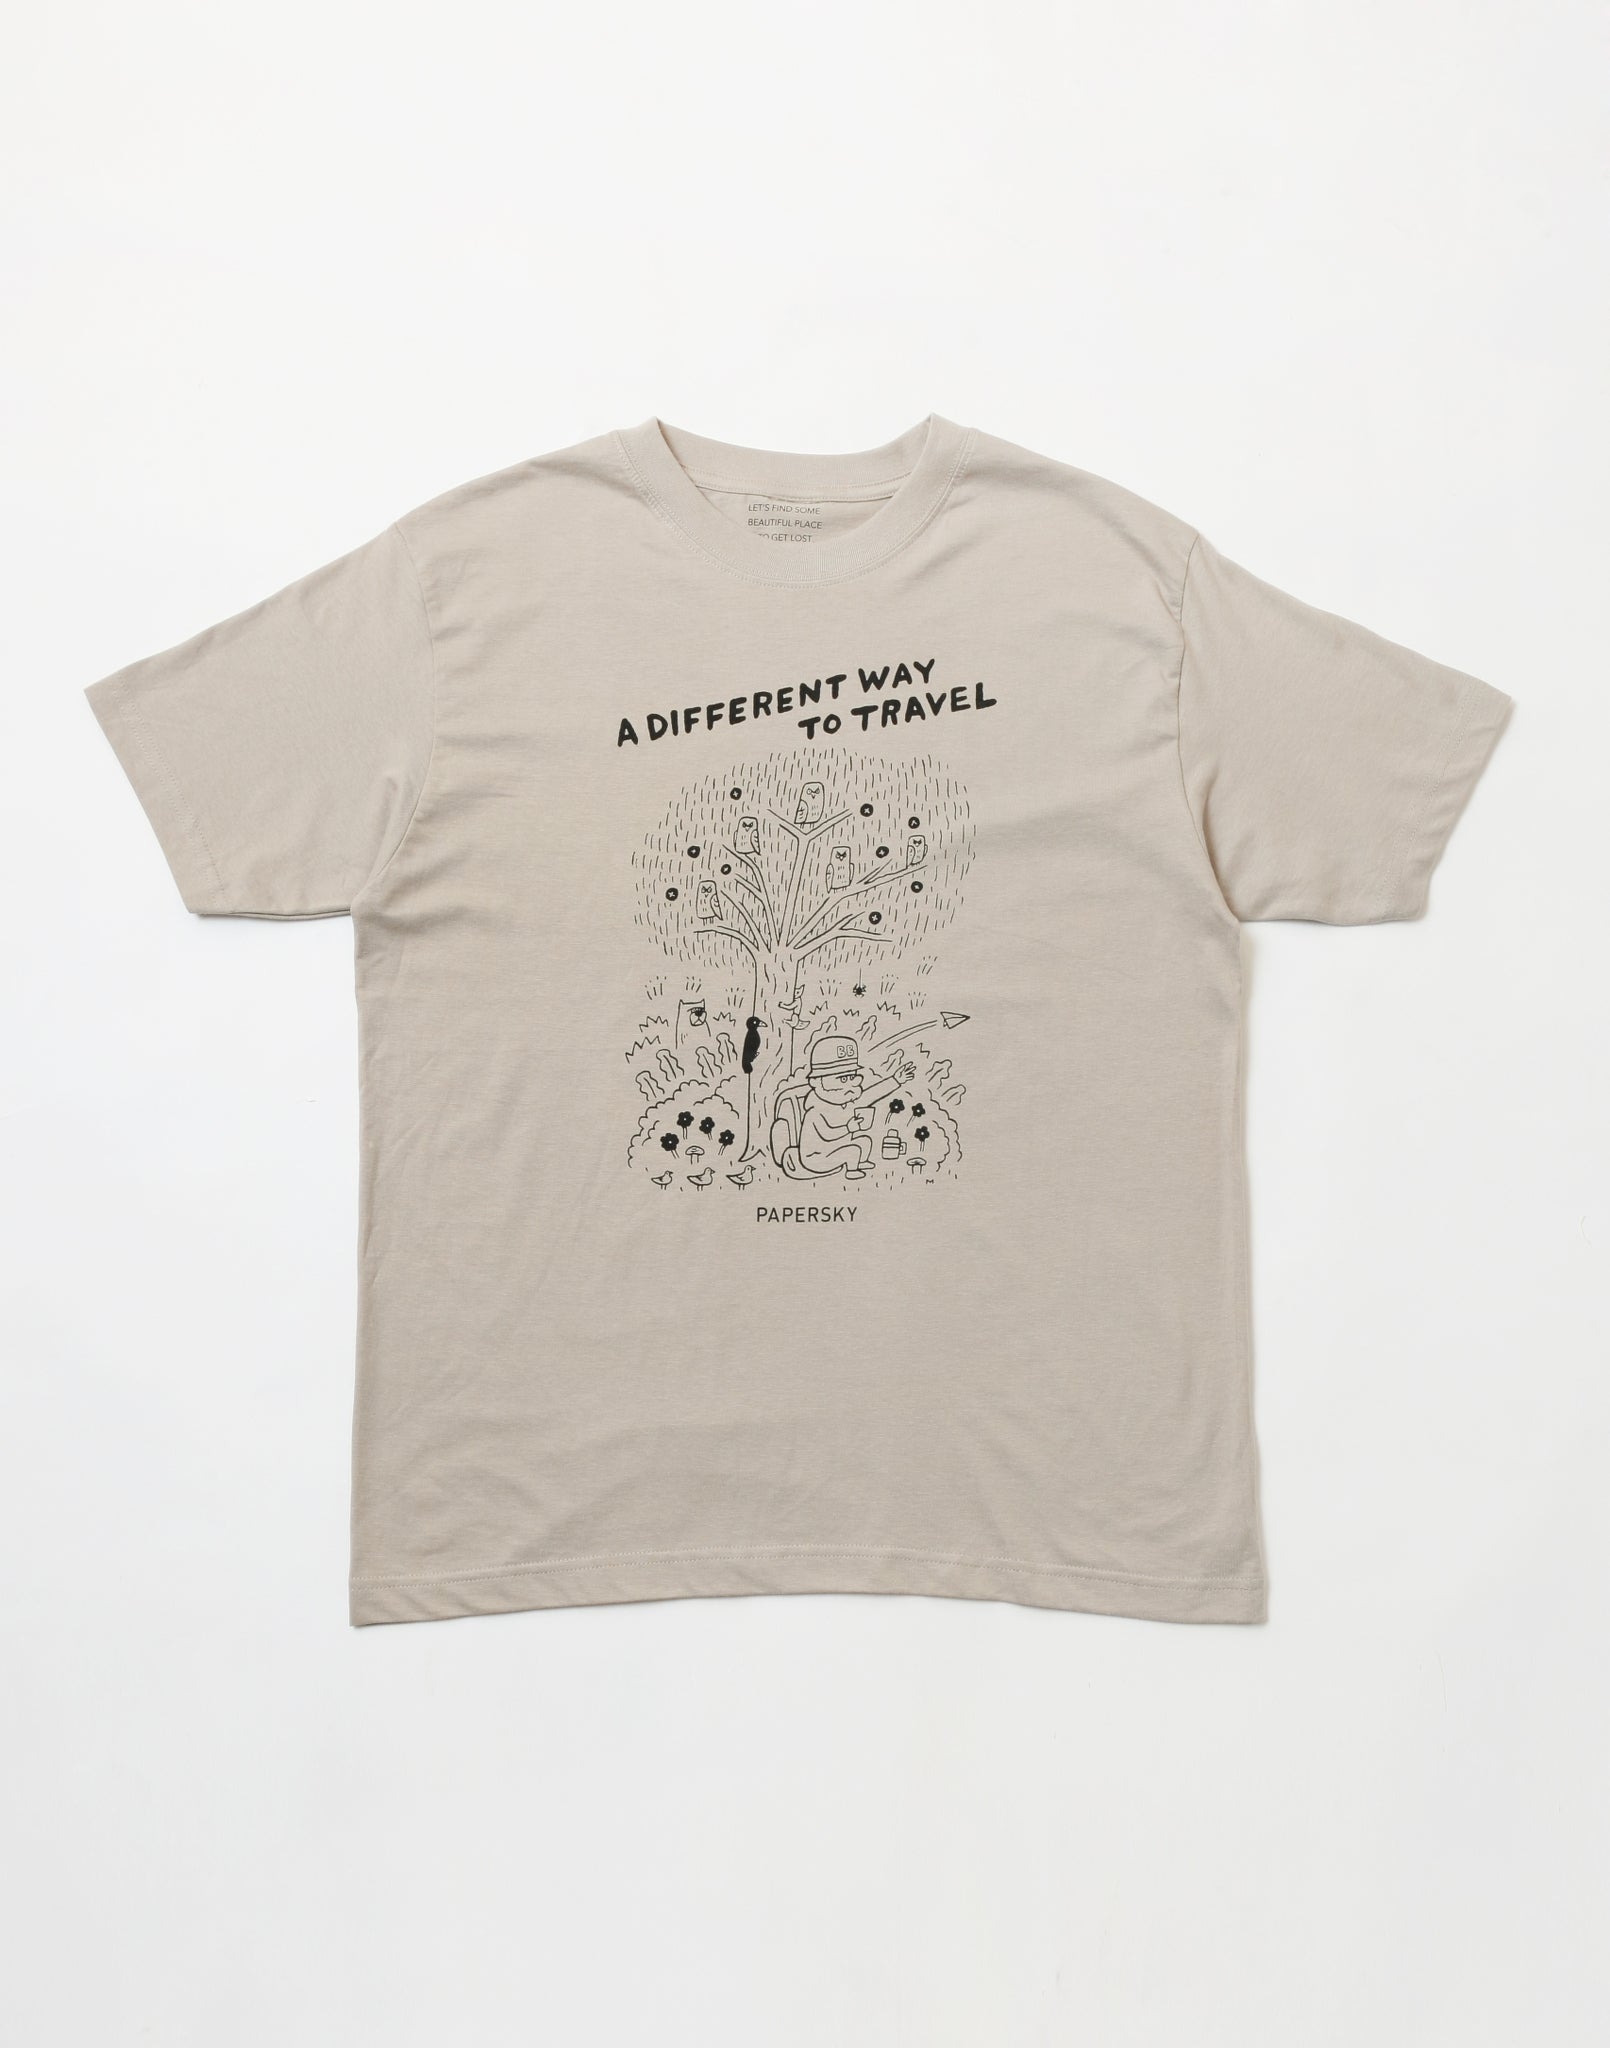 papersky t-shirt